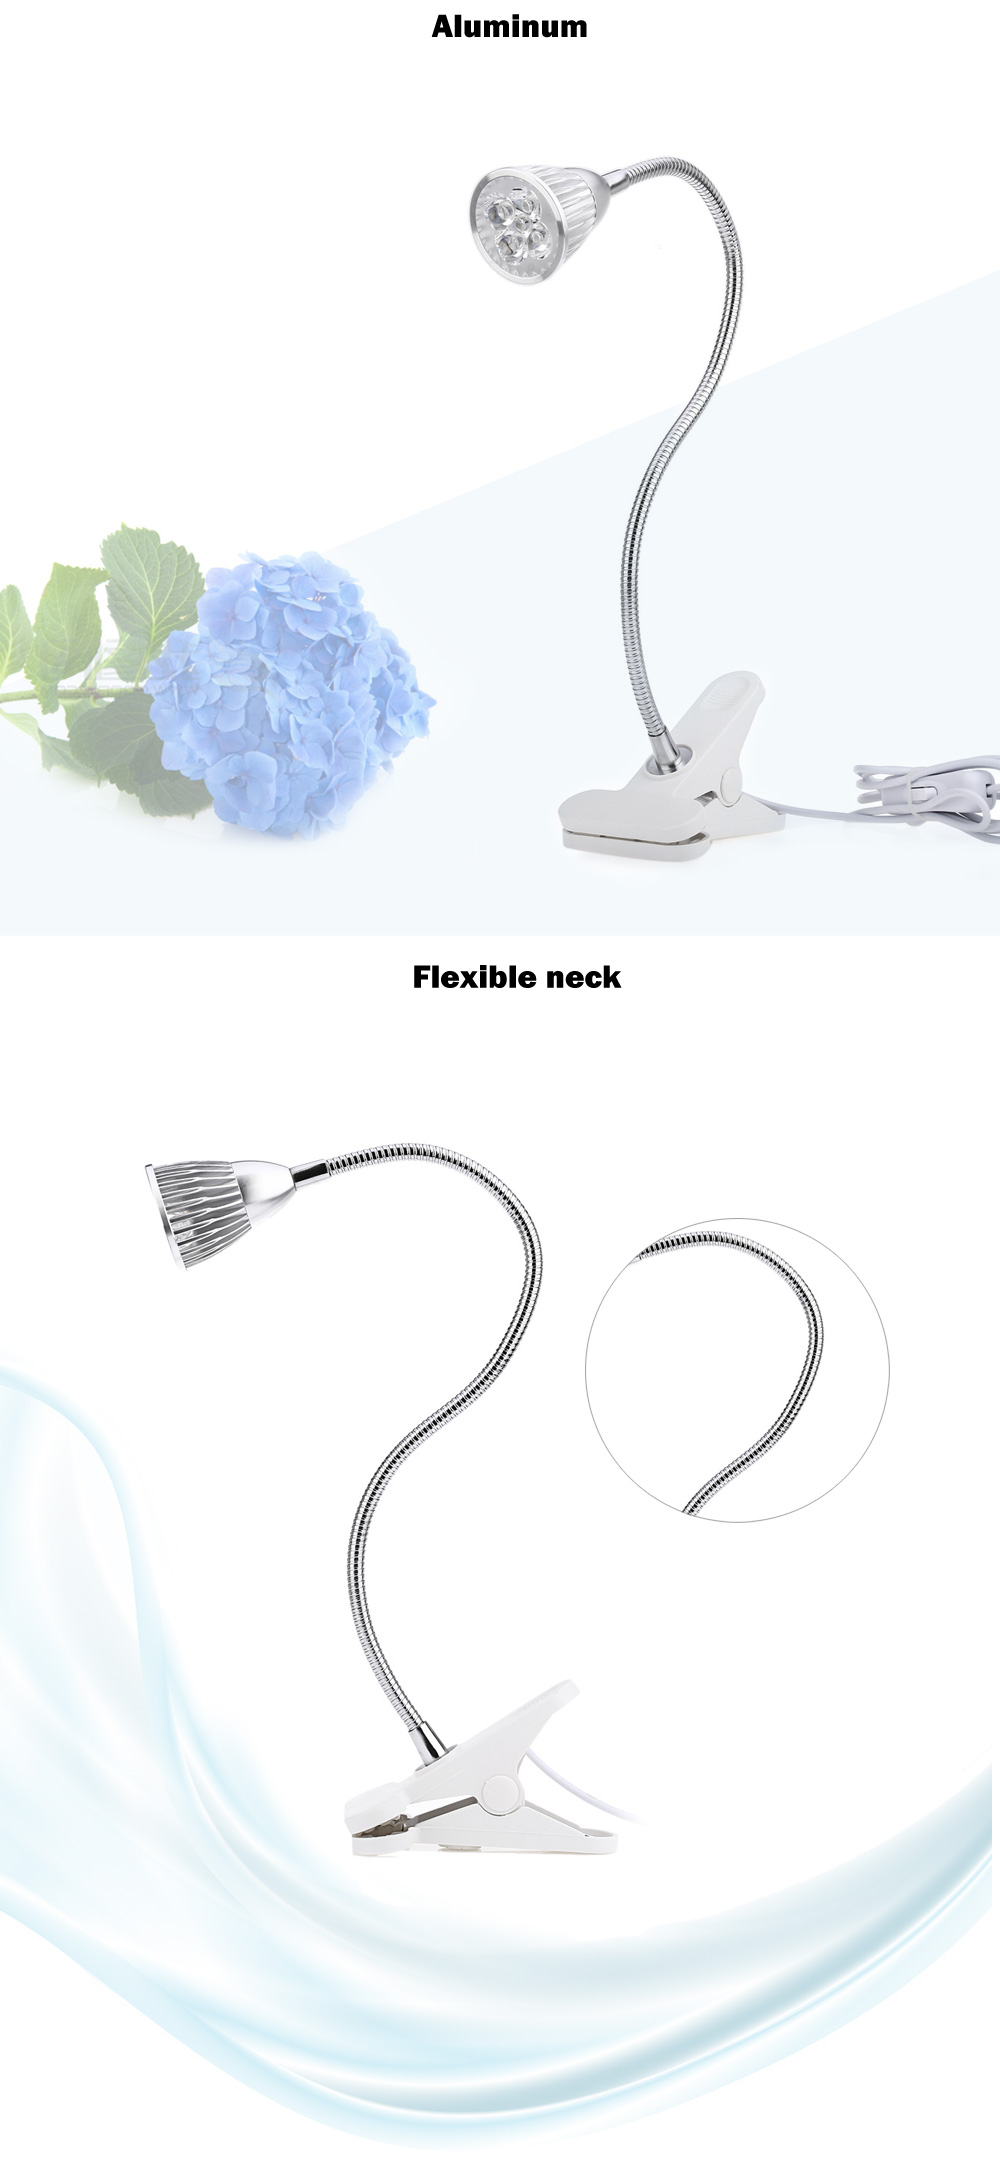 15W LED Grow Light Clip Lamp Flexible Neck 360 Degree for Hydroponics Indoor Plant with 5 LEDs